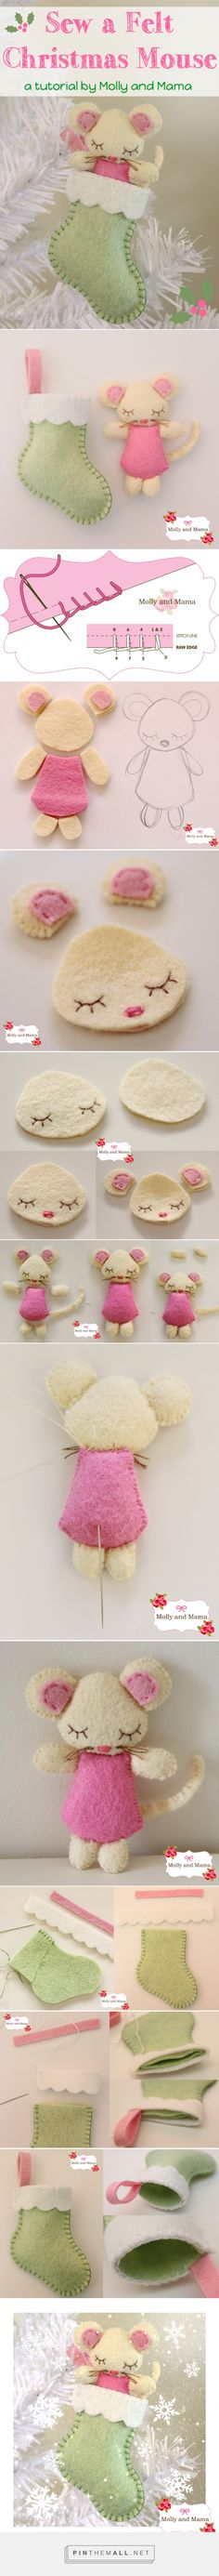 Sew a Felt Christmas Mouse - Molly and Mama - created on 2015-11-15 22:38:59